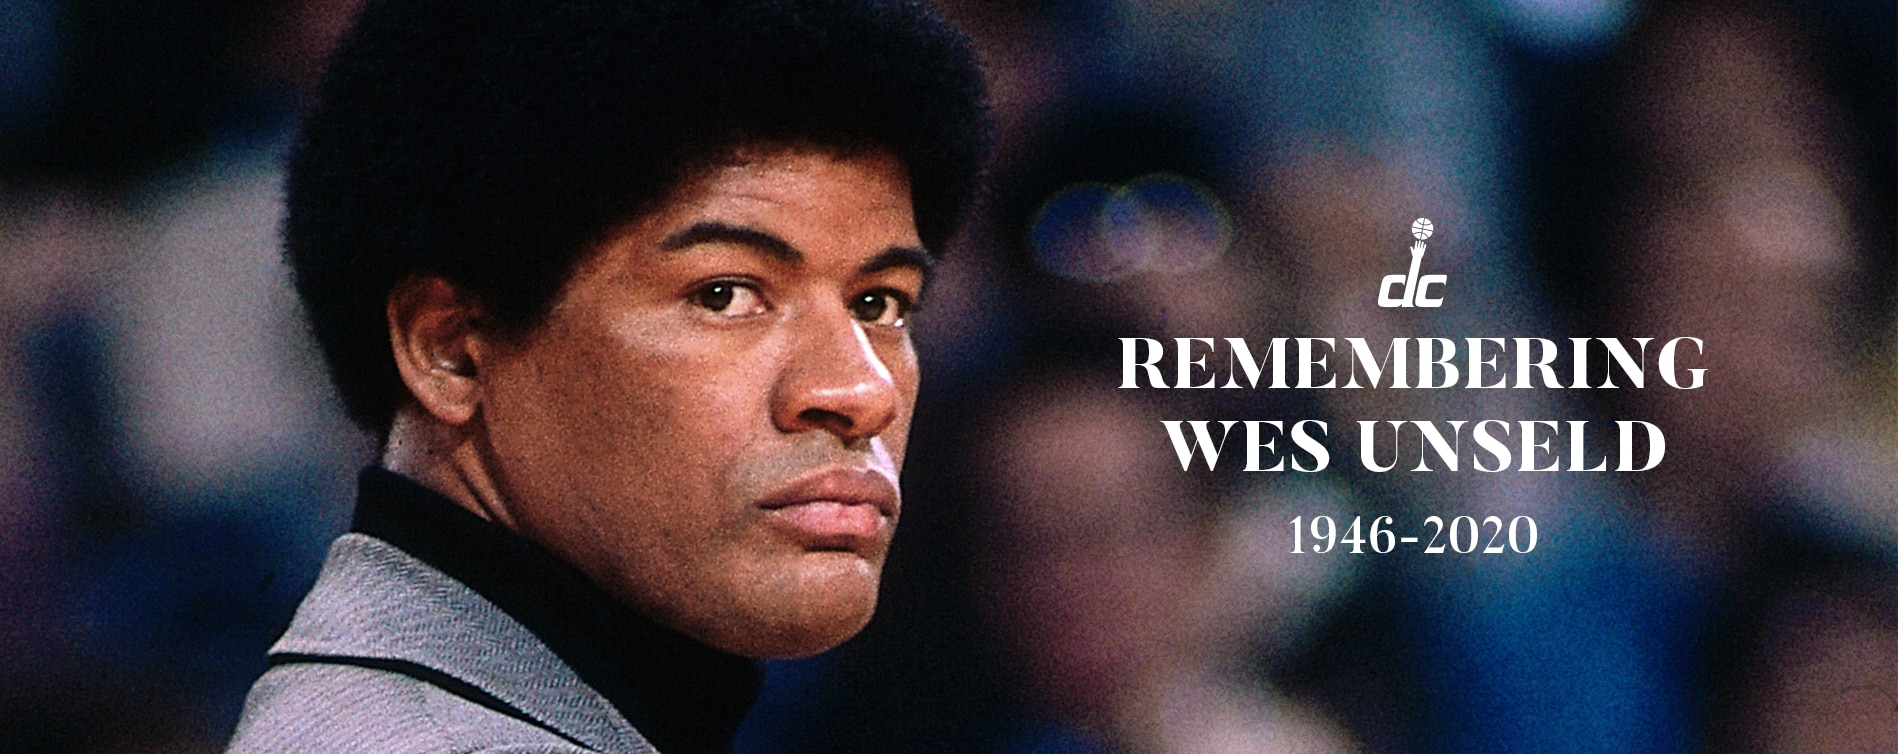 Remembering Wes Unseld